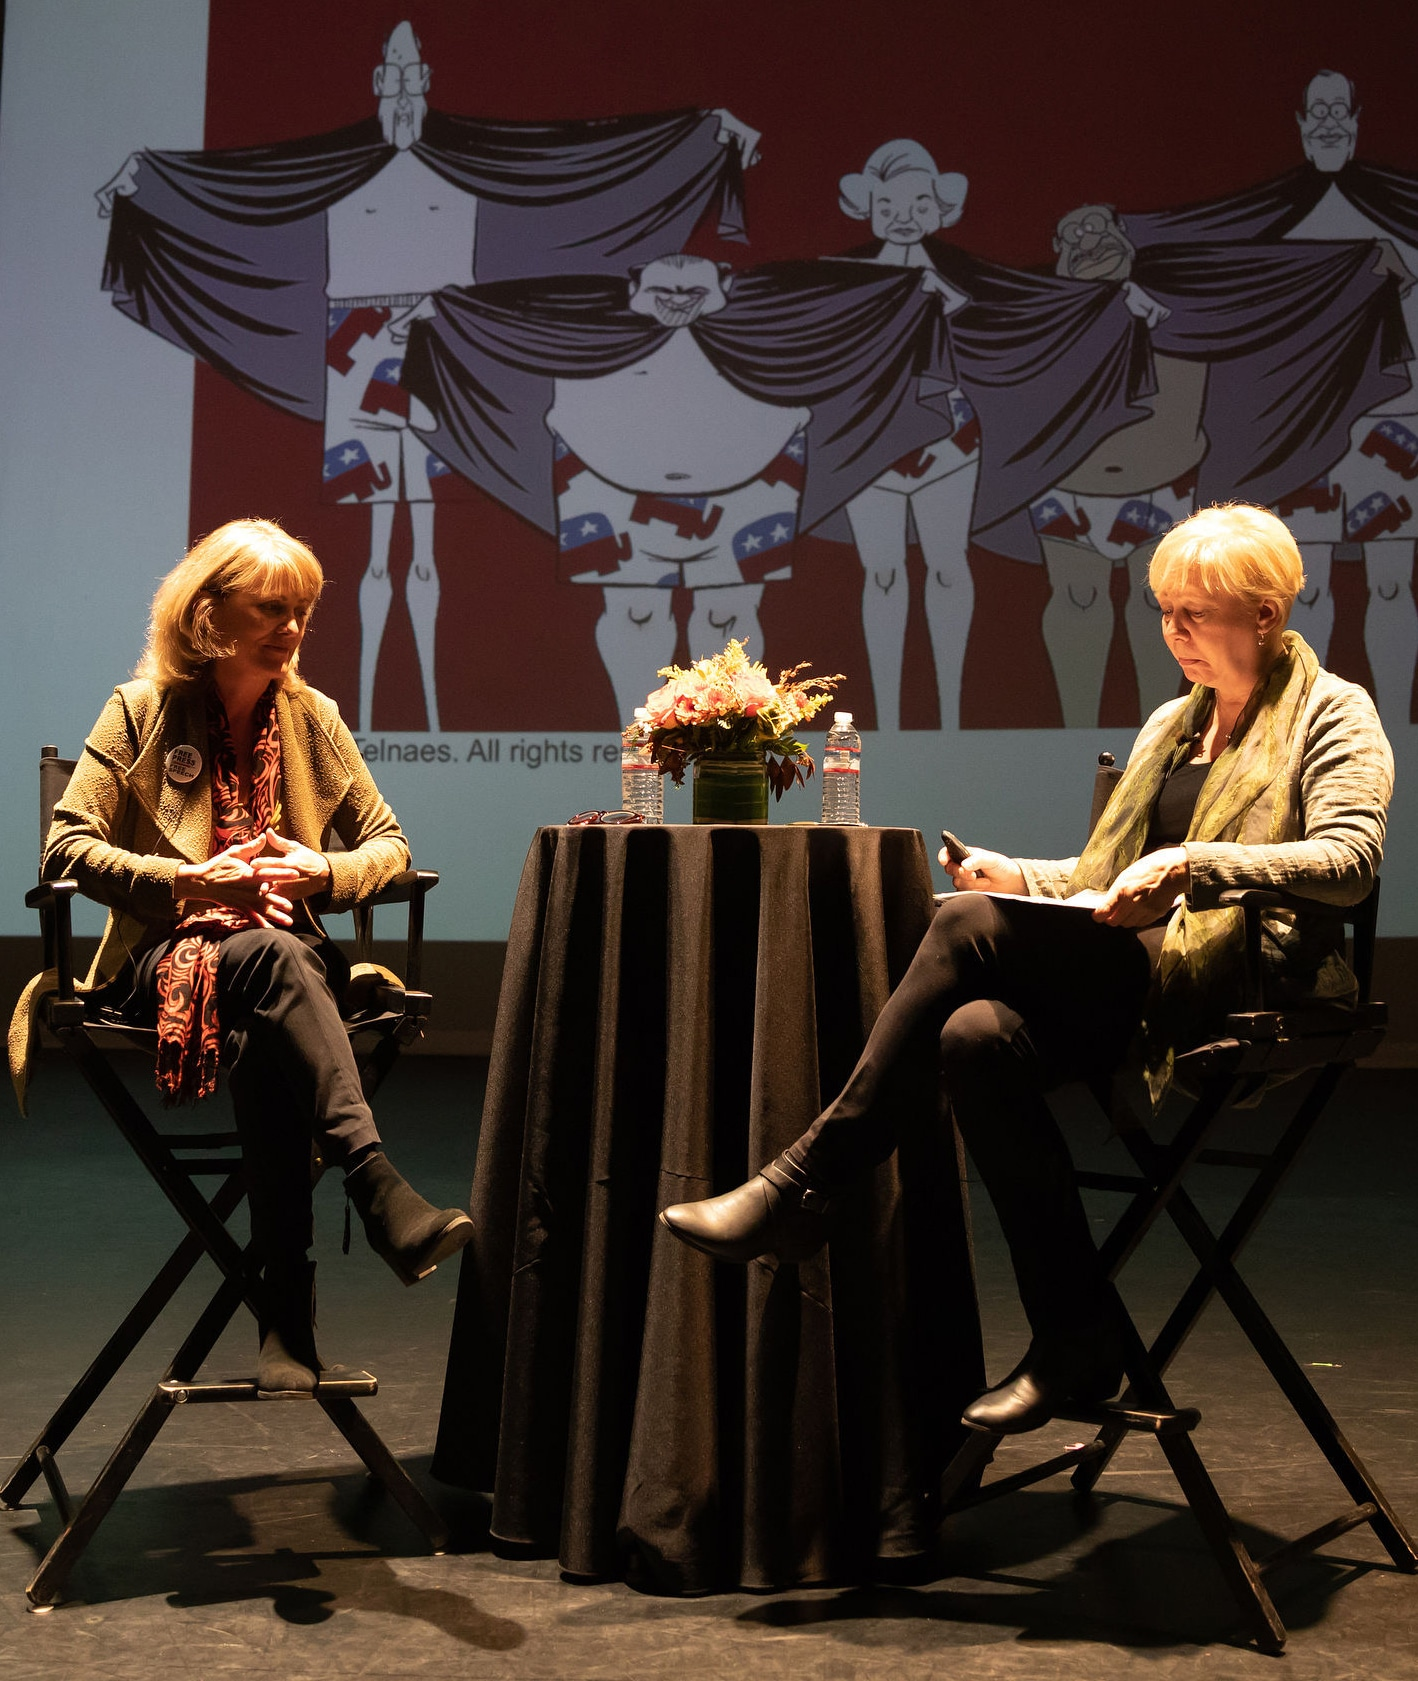 Ann Telnaes (Film/Video BFA 85) in conversation with CalArts faculty member Mindy Johnson